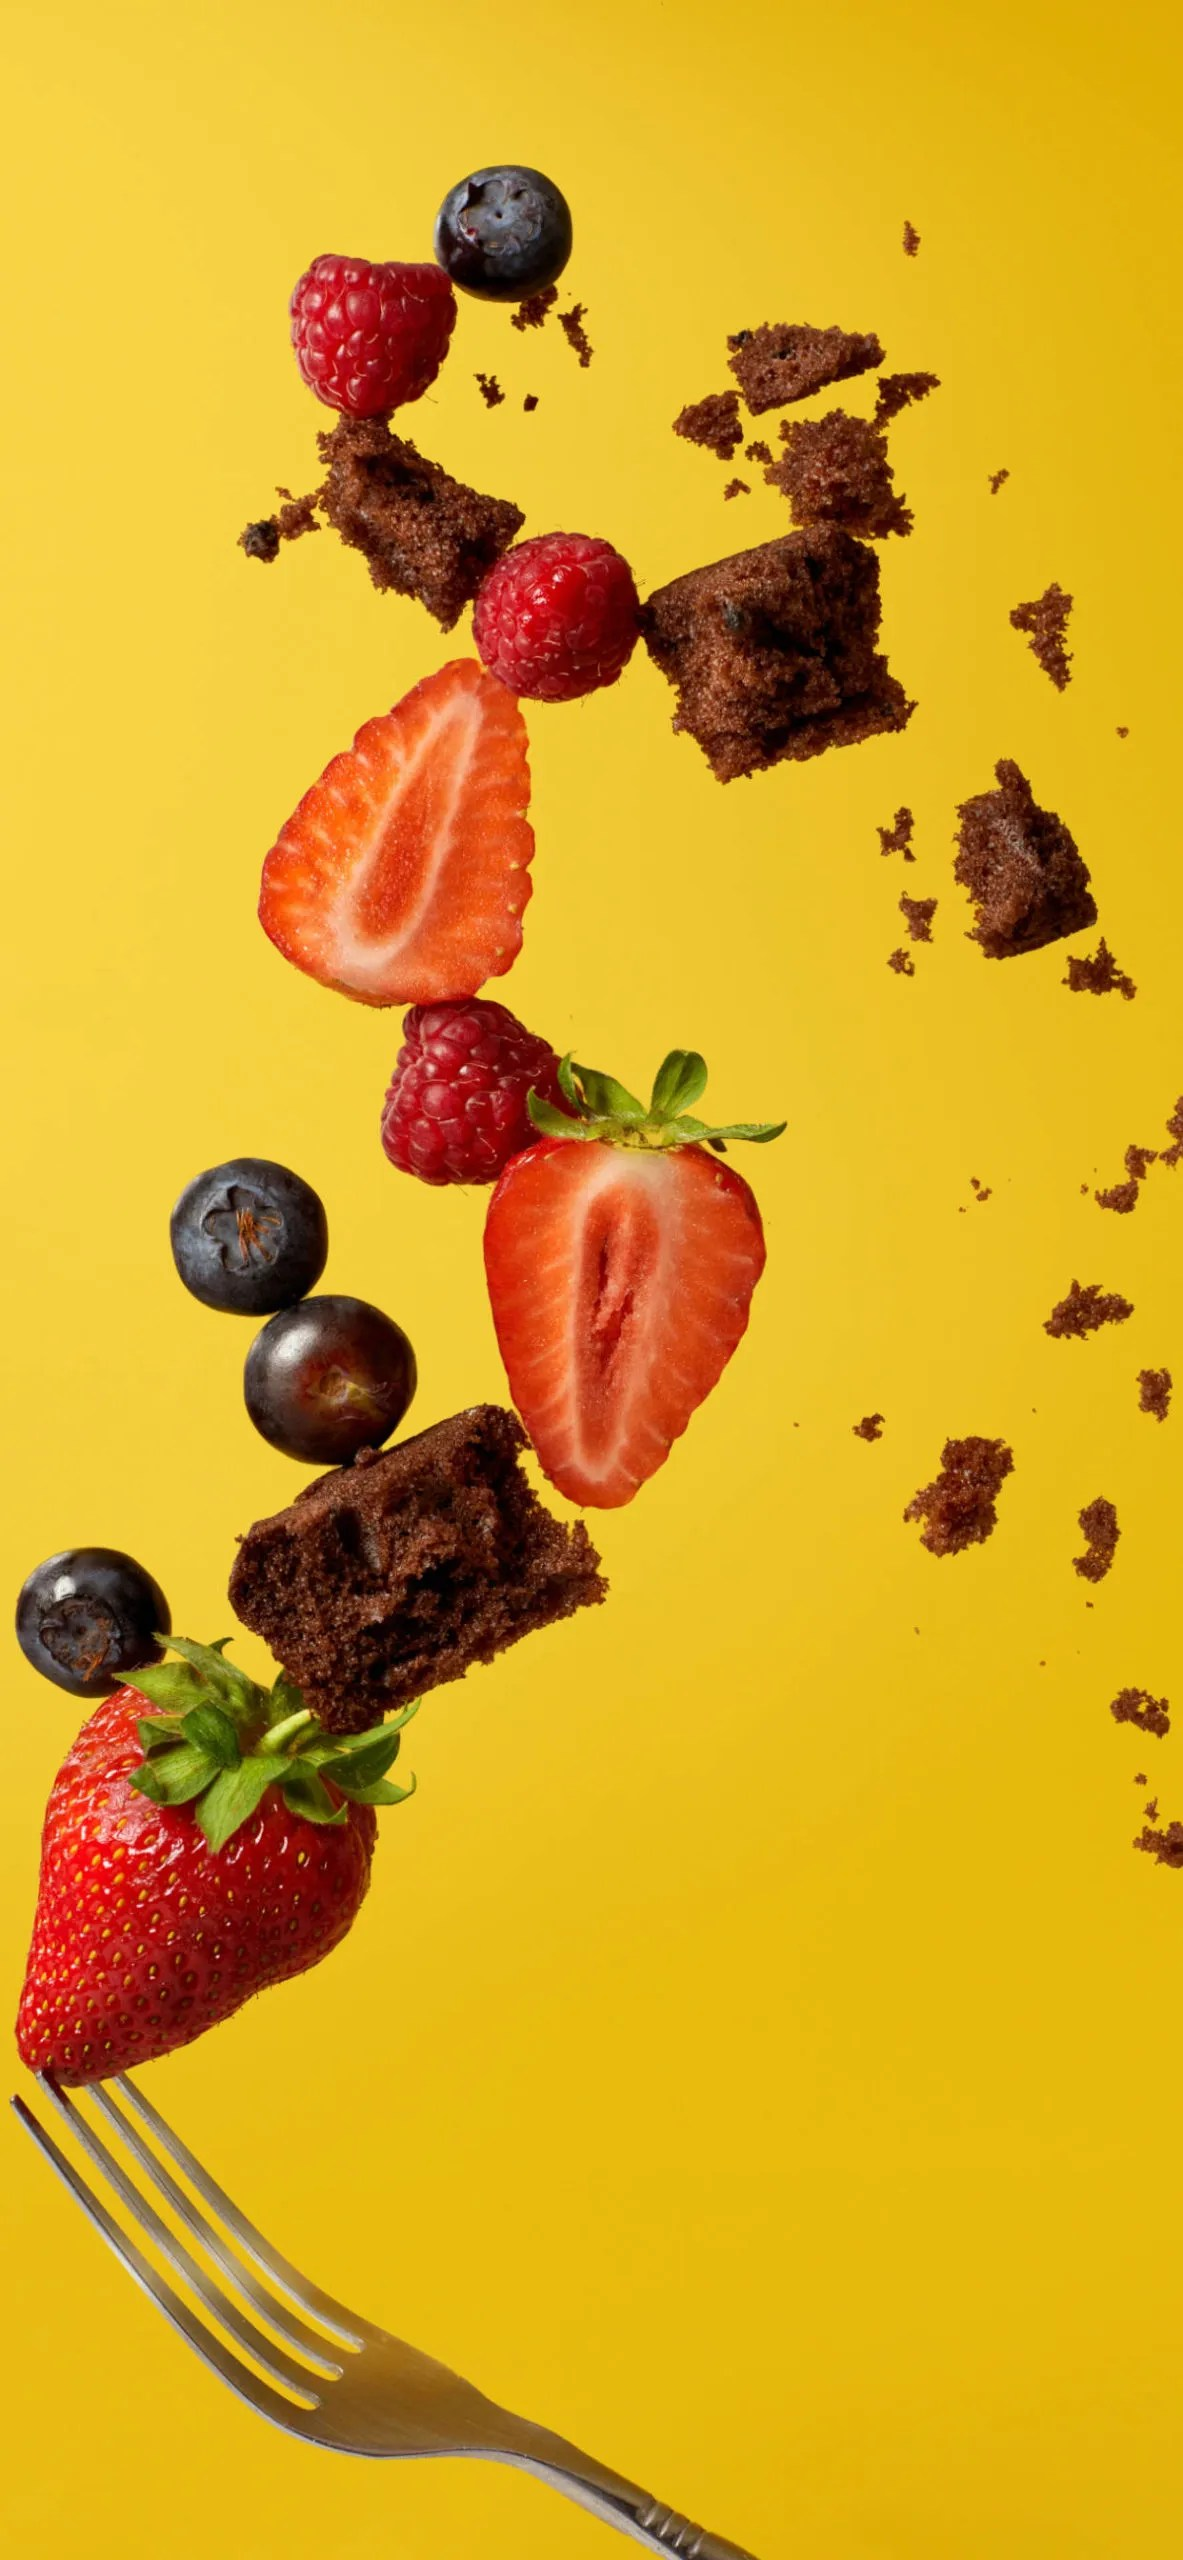 iPhone wallpapers fruits strawberry chocolate scaled Fruits